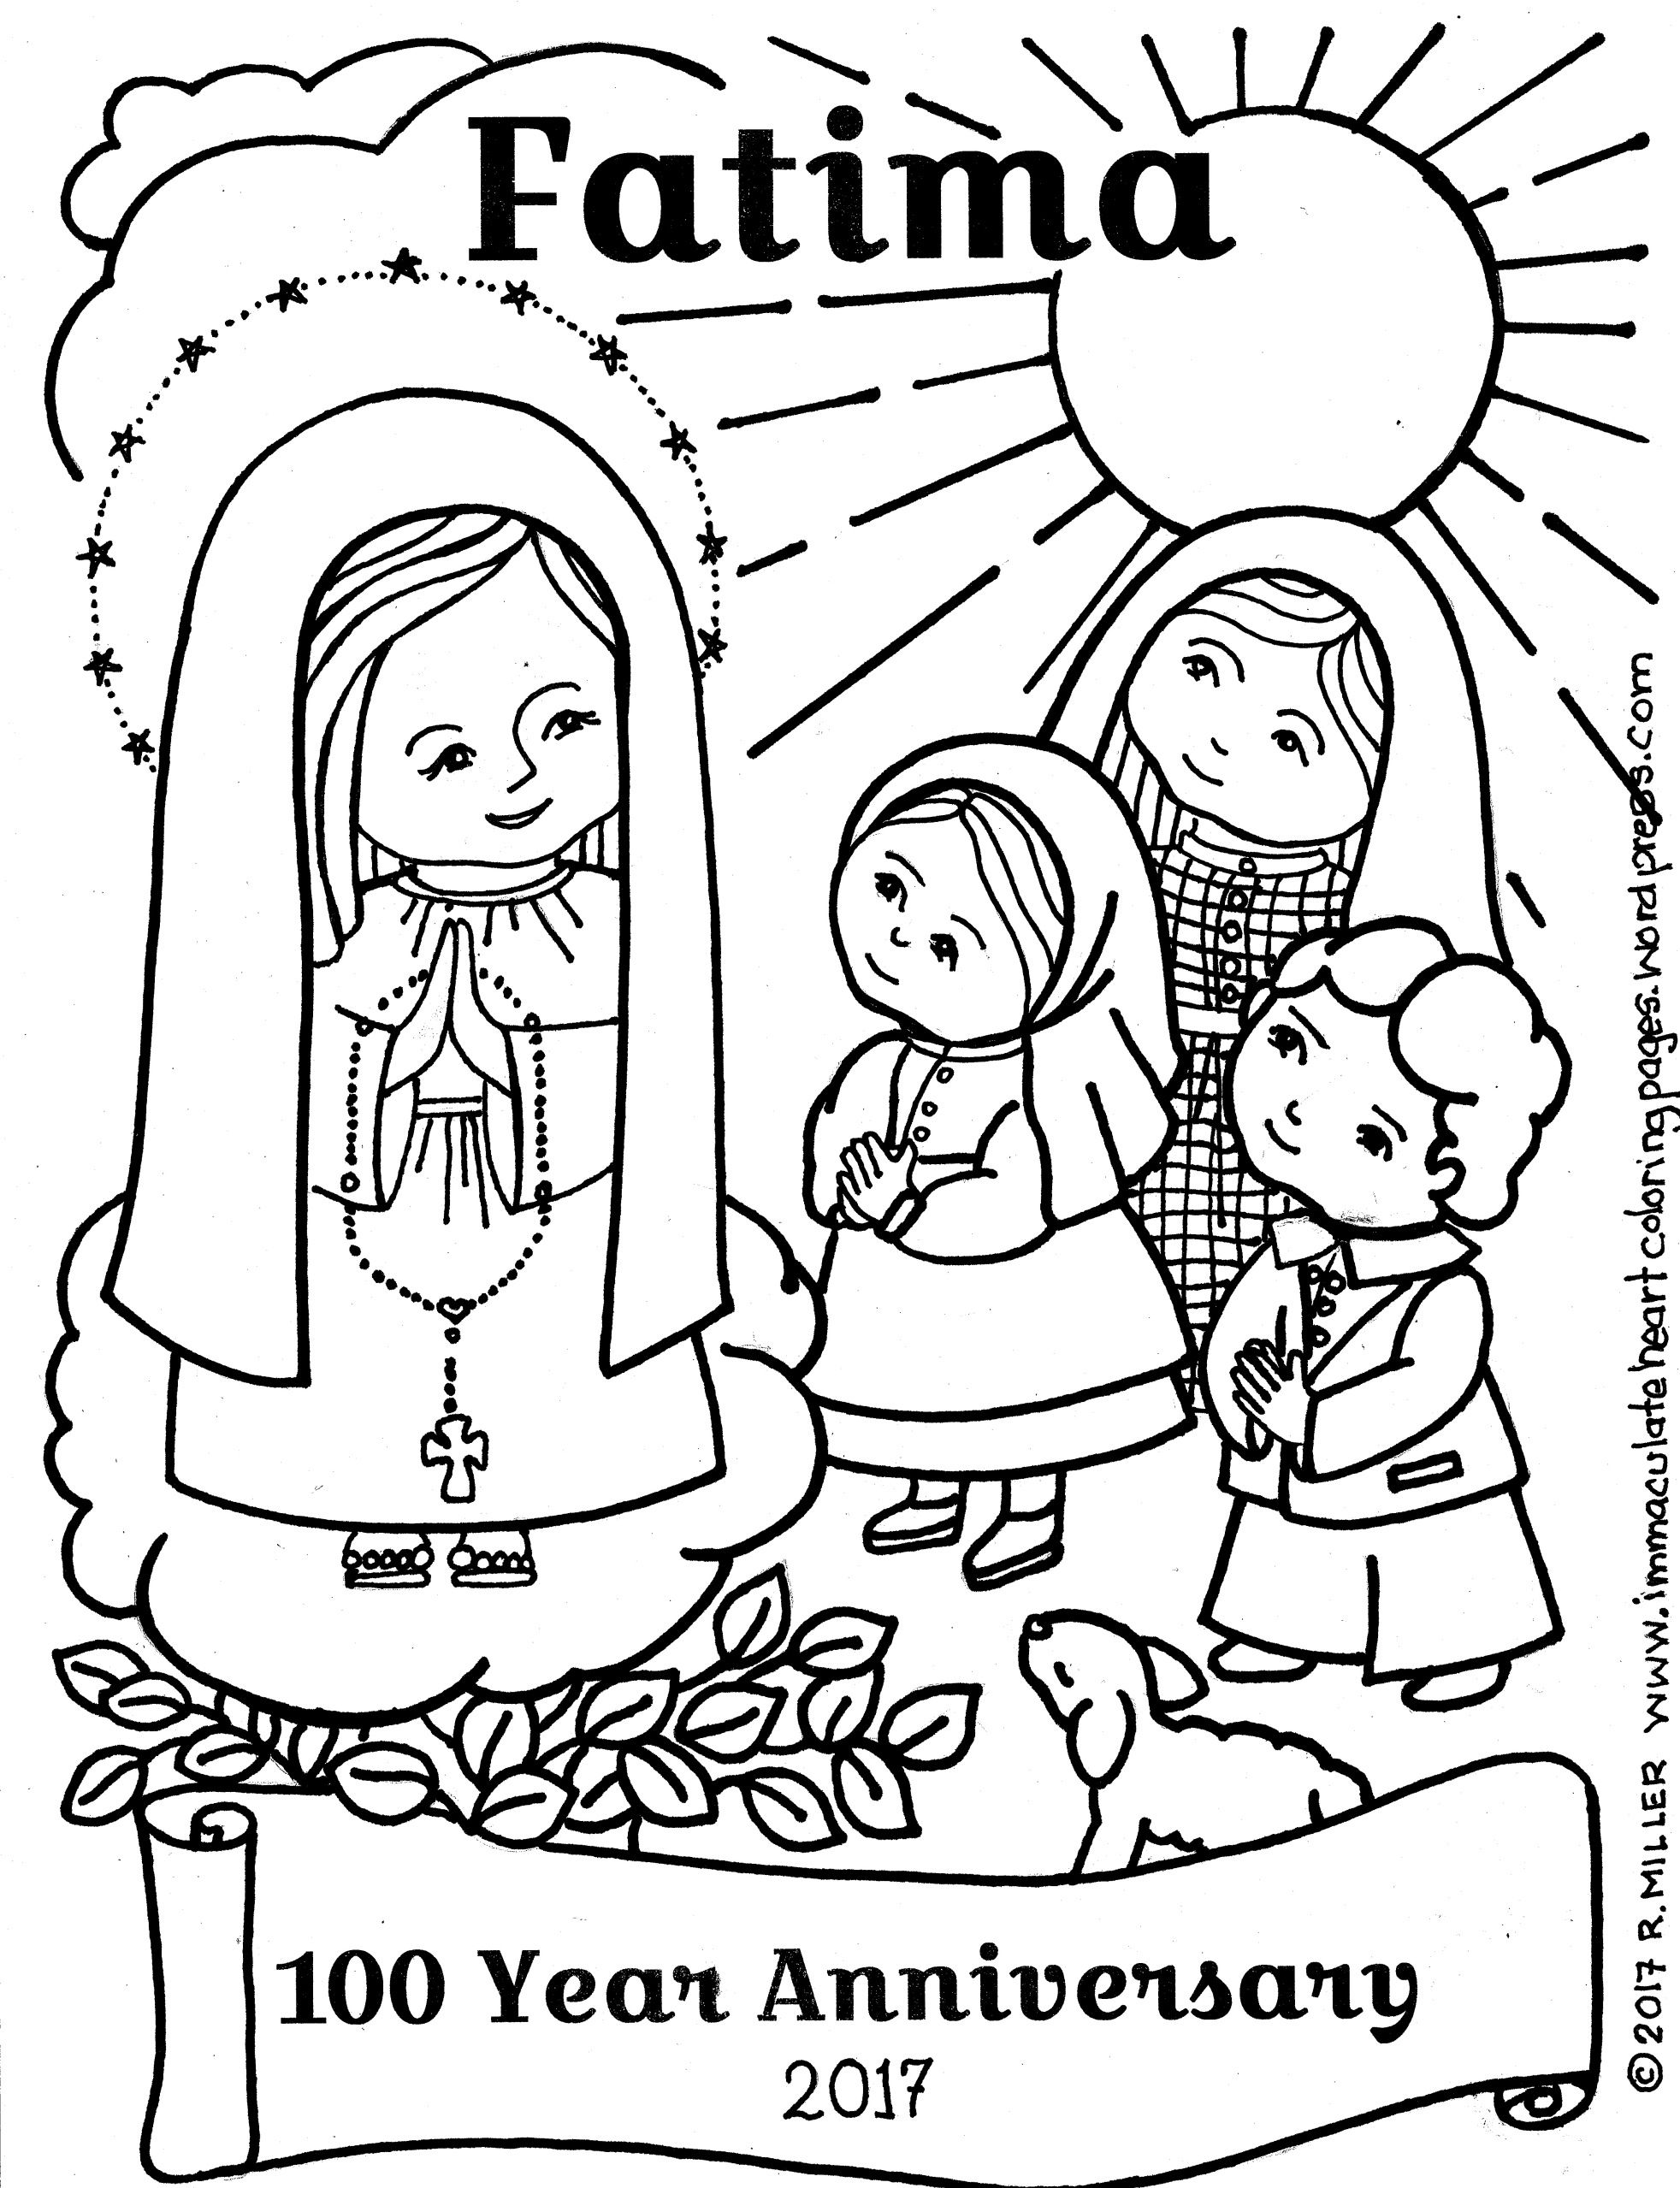 Catholic Christian Pages to Color | OUR LADY OF FATIMA | Pinterest ...